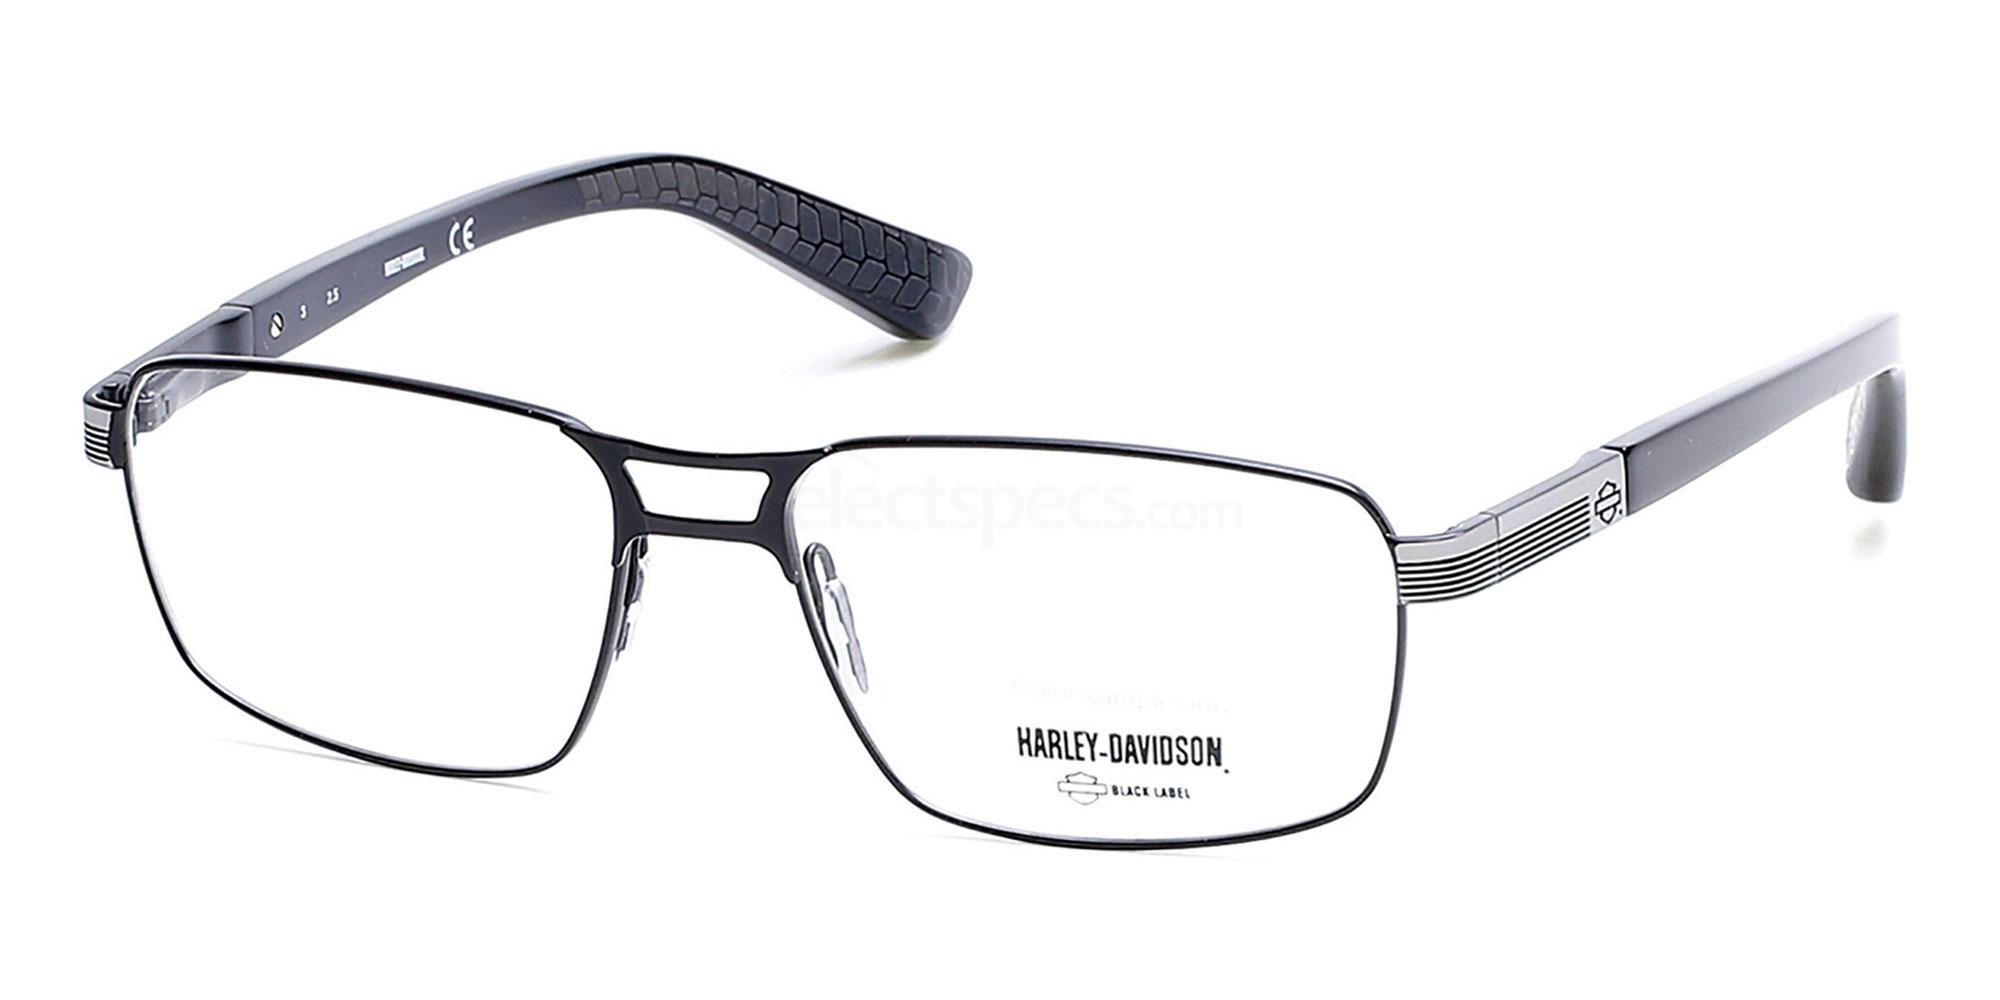 001 HD 1035 Glasses, Harley Davidson